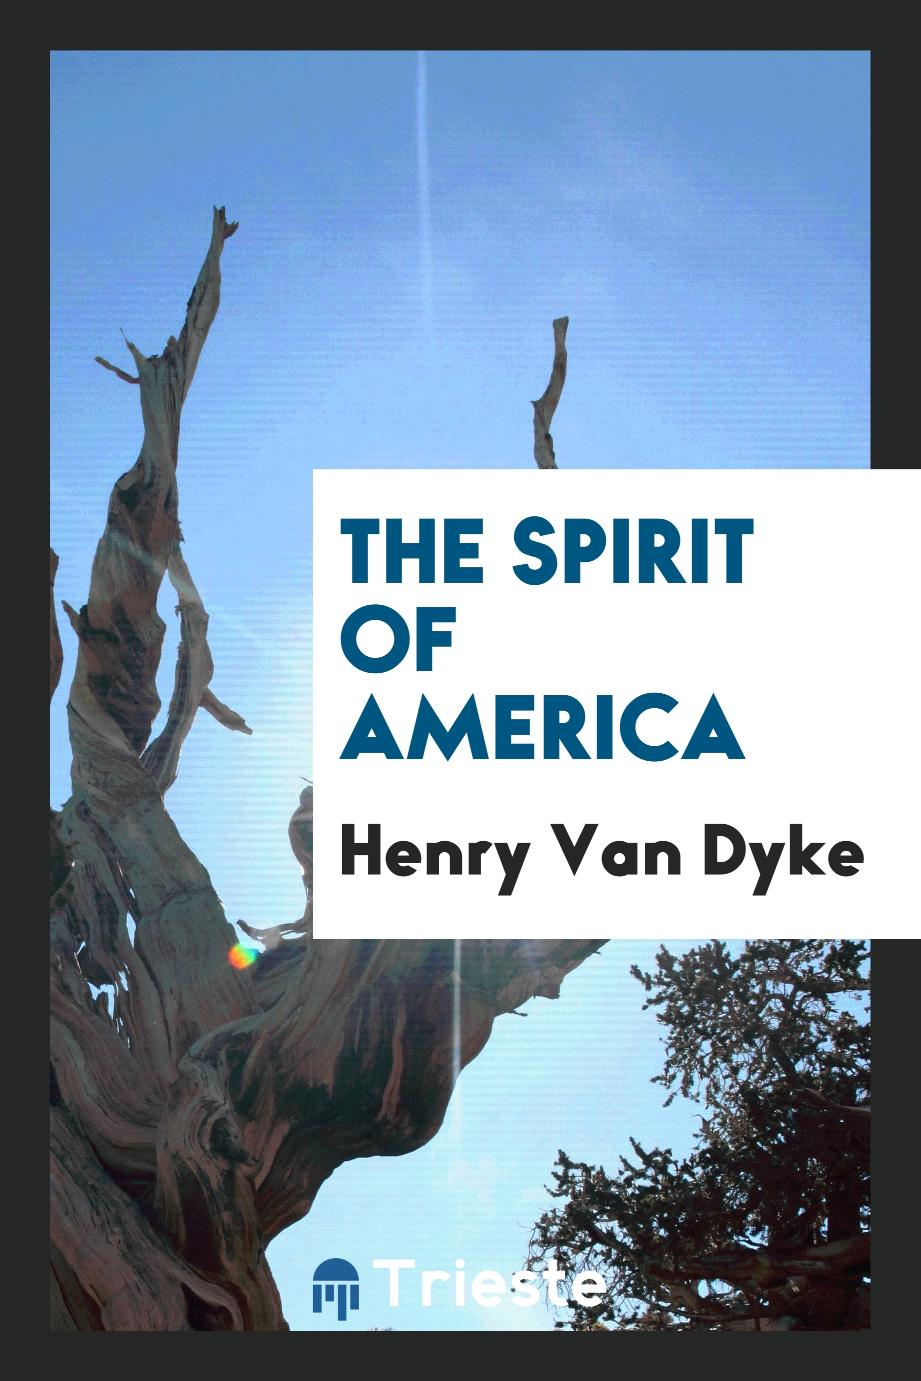 The Spirit of America